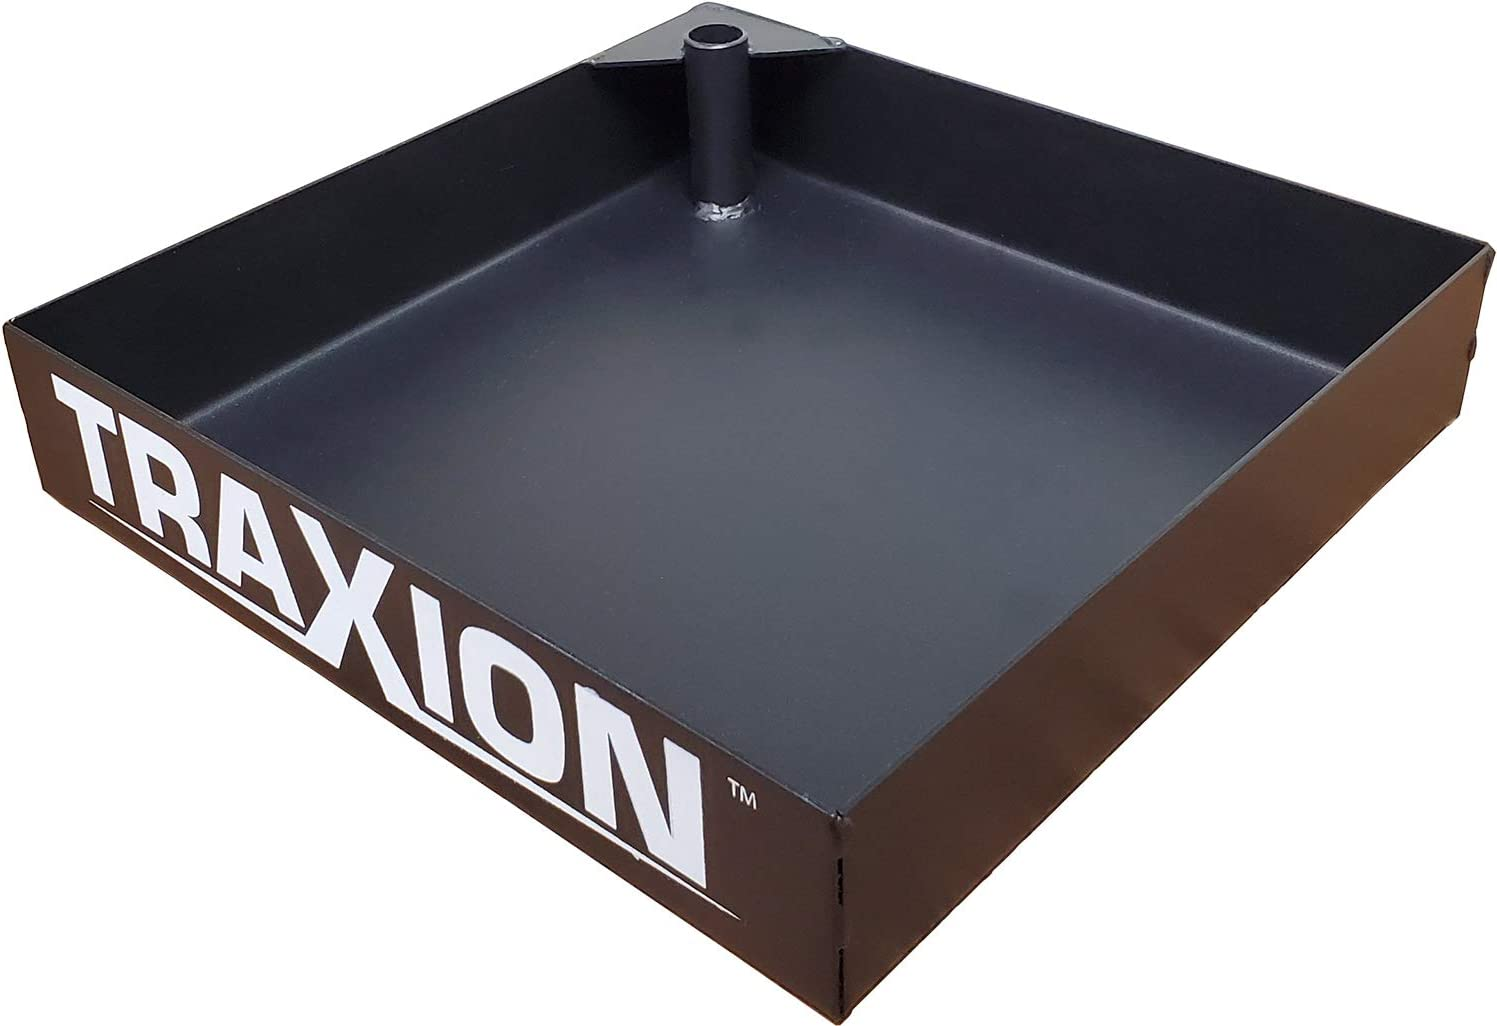 Traxion store 3-102 Topside Tool Tray online shopping Creeper